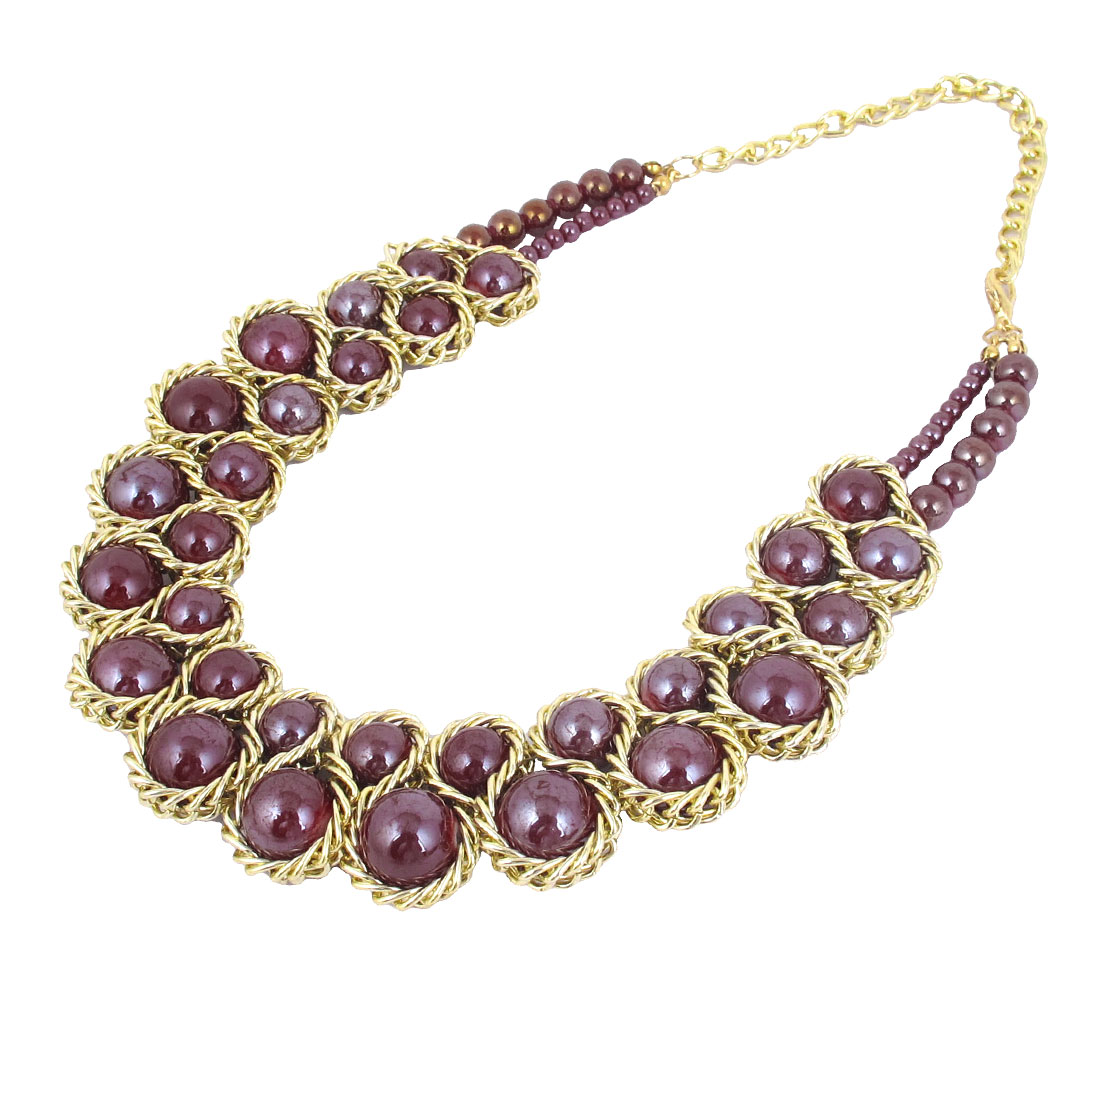 Woman Lady Purple Resin Beads Pendant Choker Bib Statement Collar Chain Necklace